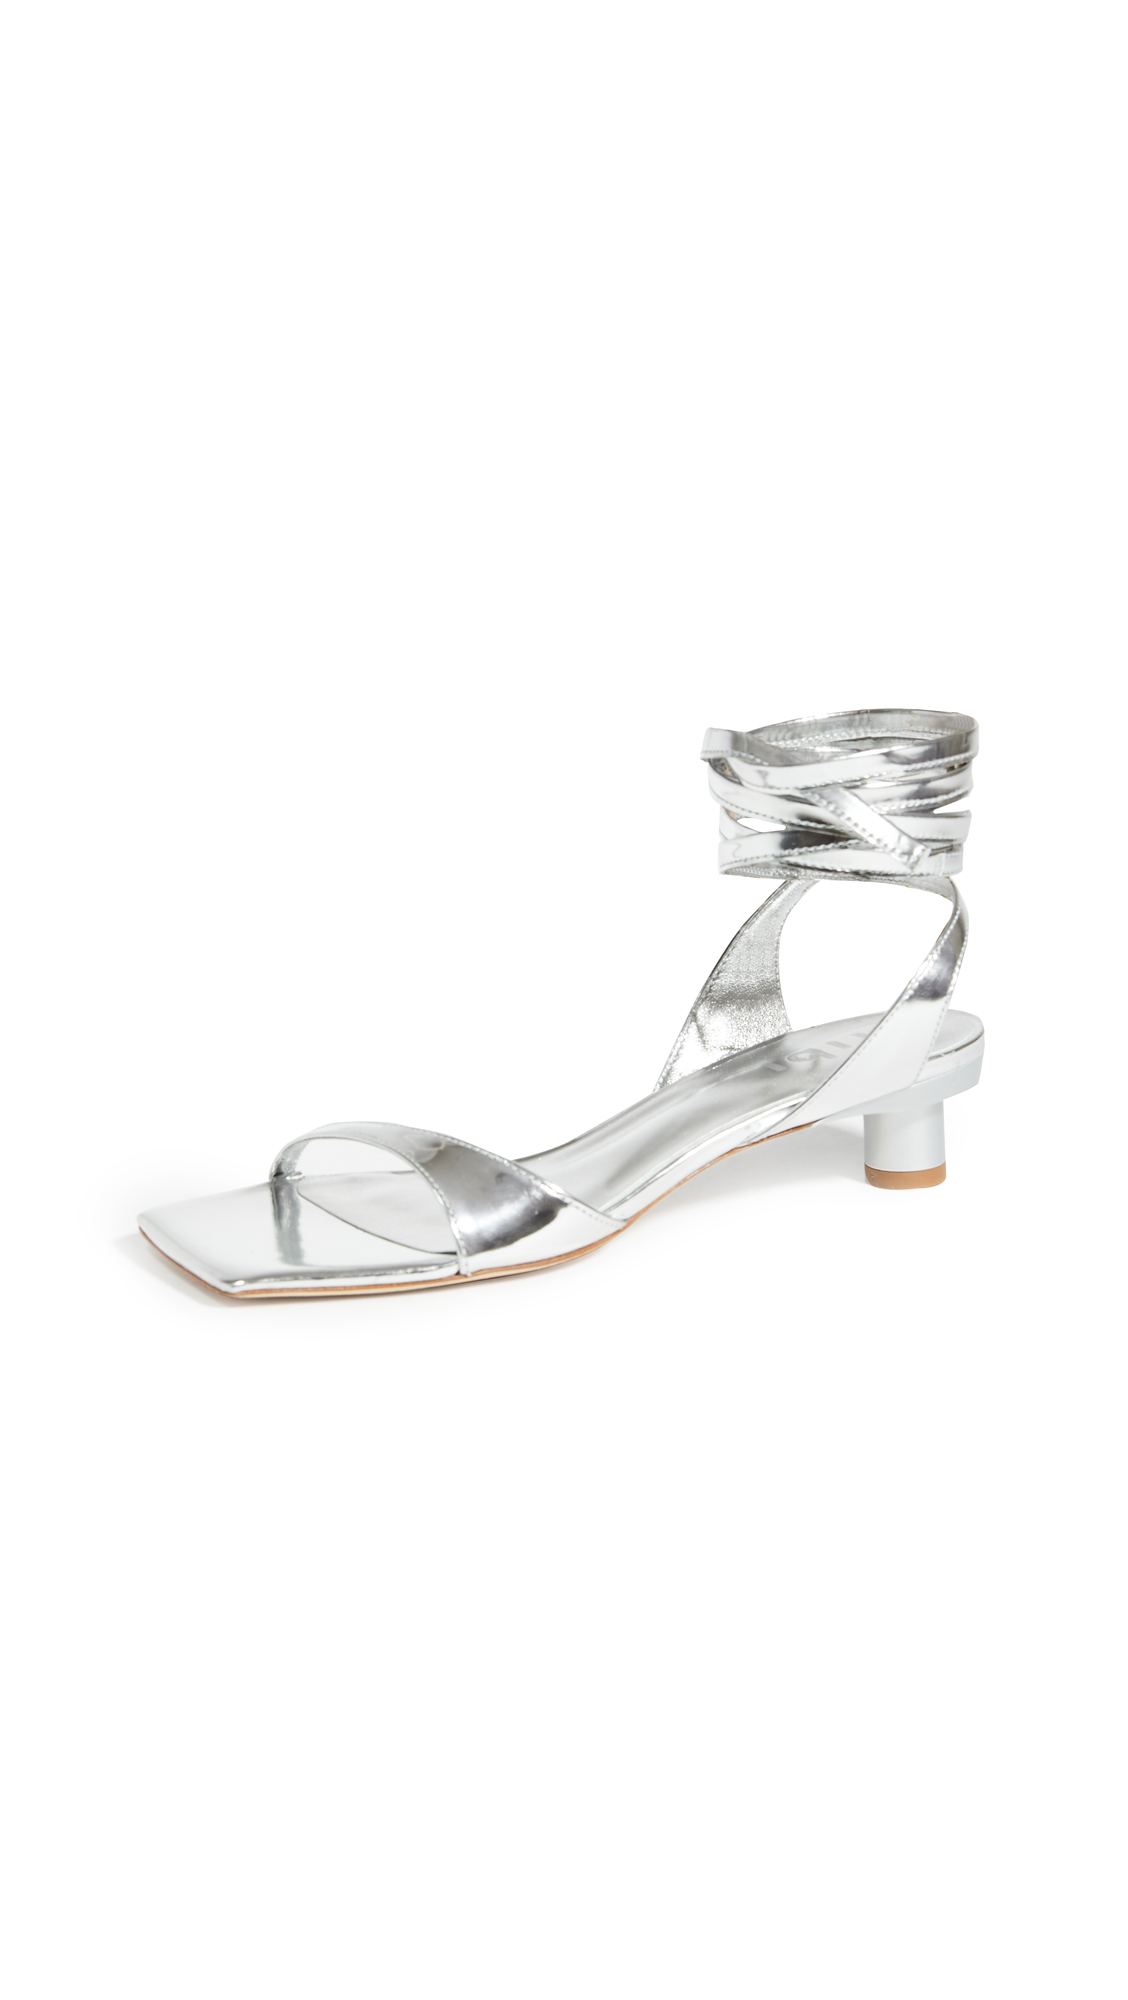 Tibi Jiro Metallic Sandals – 30% Off Sale